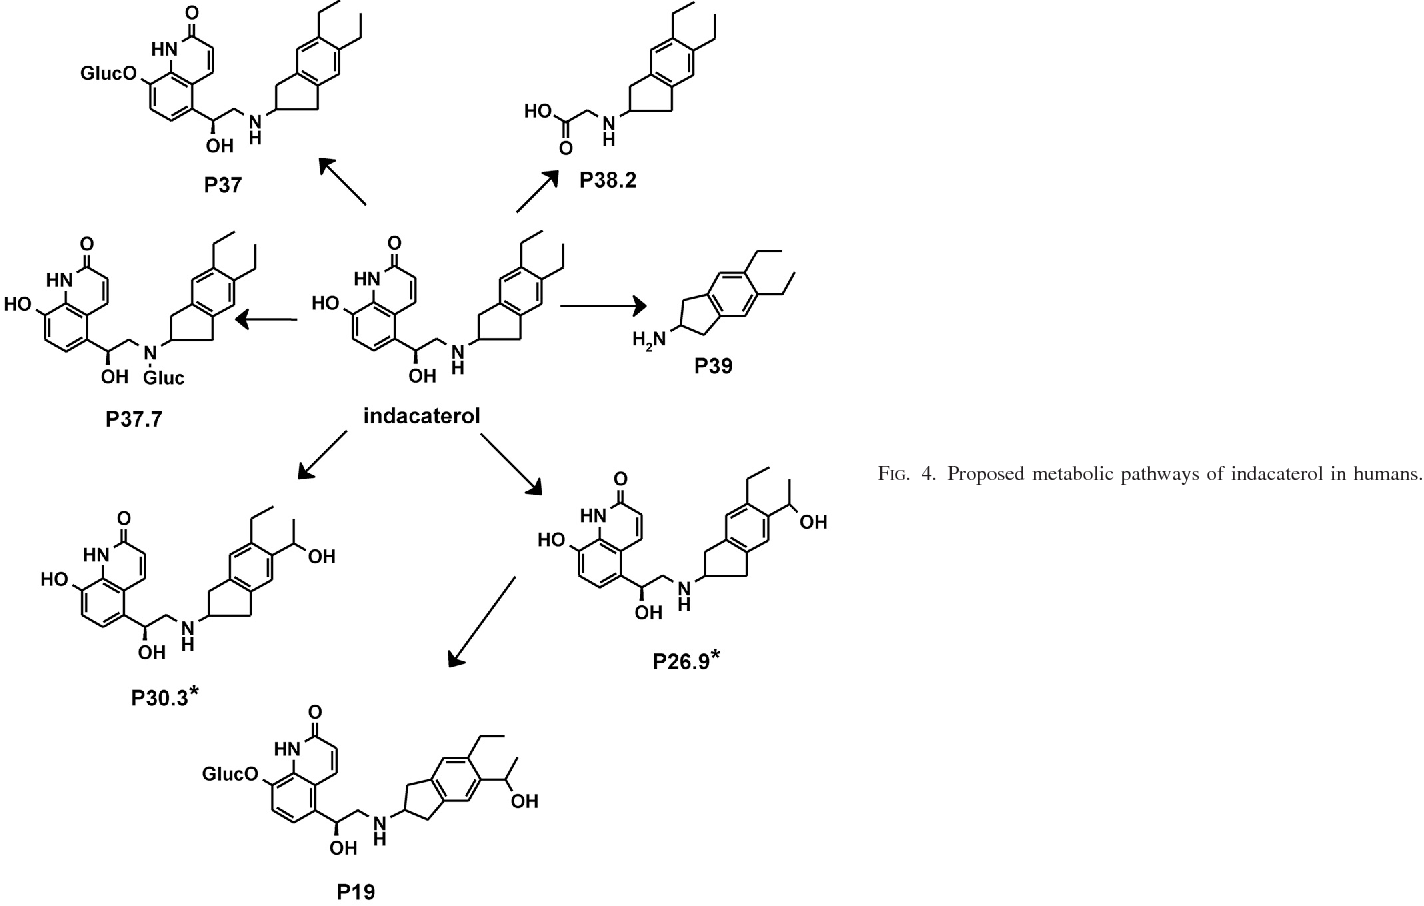 PDF] Metabolism and Pharmacokinetics of Indacaterol in Humans ...